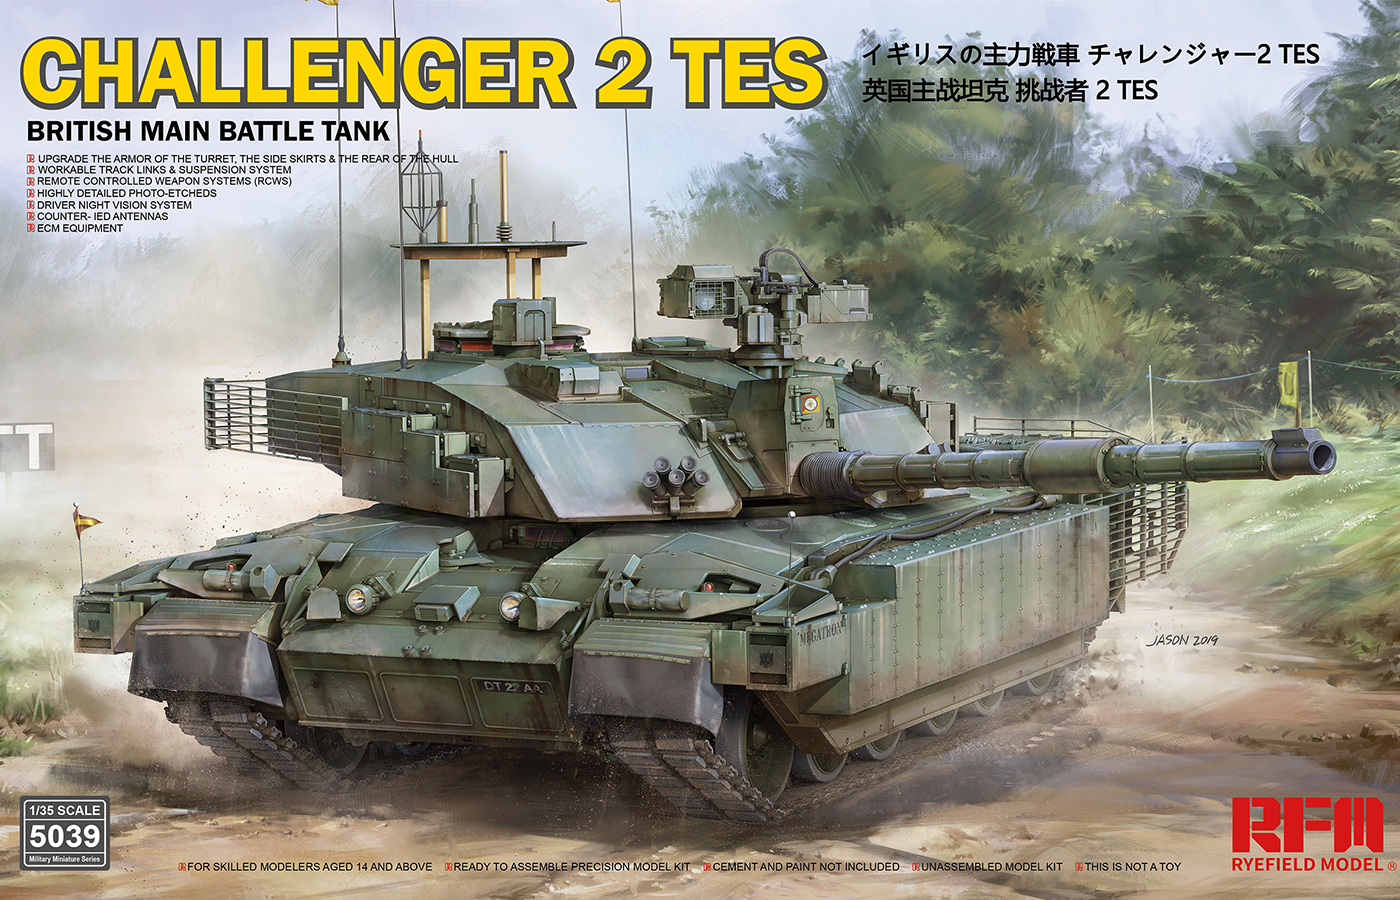 RM-5038 CHALLENGER 2 TES